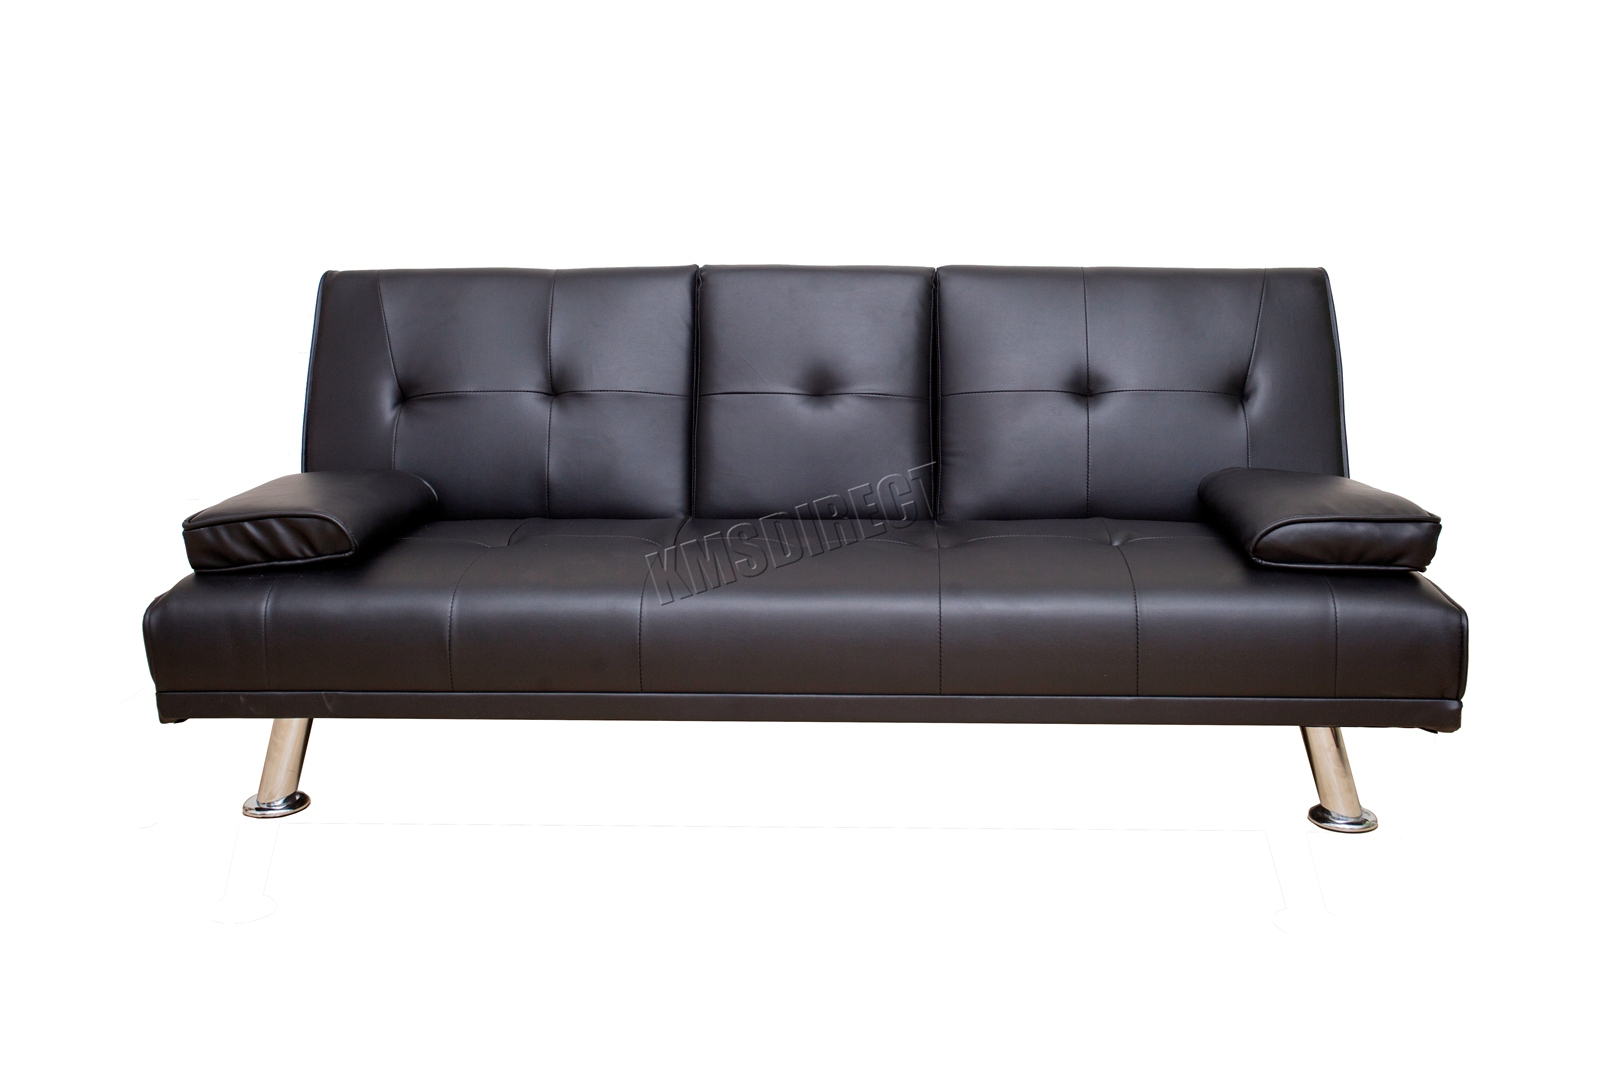 WestWood-Faux-Leather-Manhattan-Sofa-Bed-recliner-3-Seater-Modern-Luxury-Design thumbnail 16